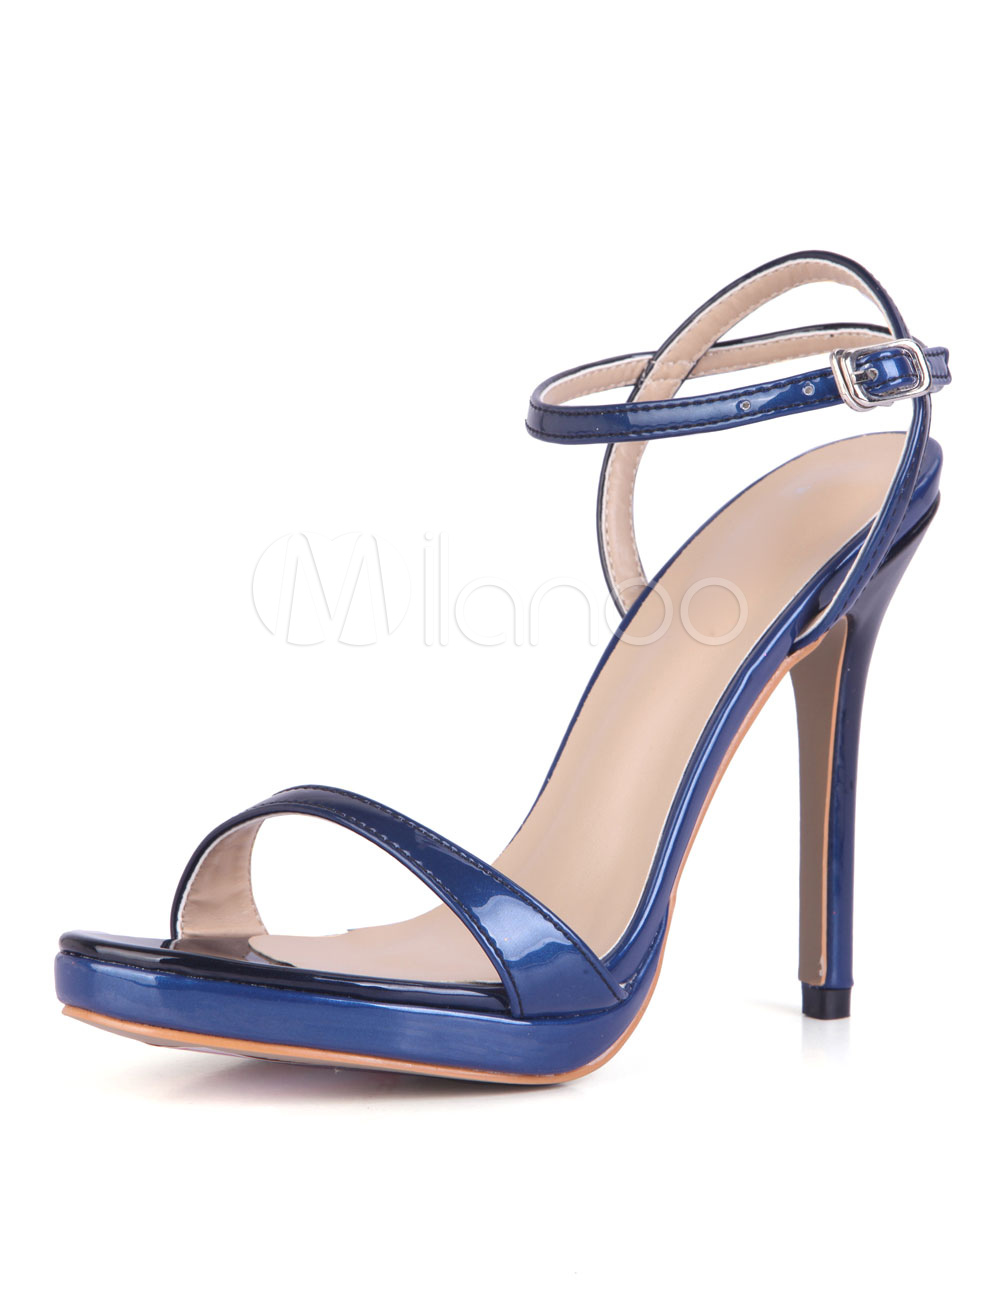 Buy Black Sandal Shoes High Heel Stiletto Open Toe Ankle Strap PU Women Sandals for $49.99 in Milanoo store